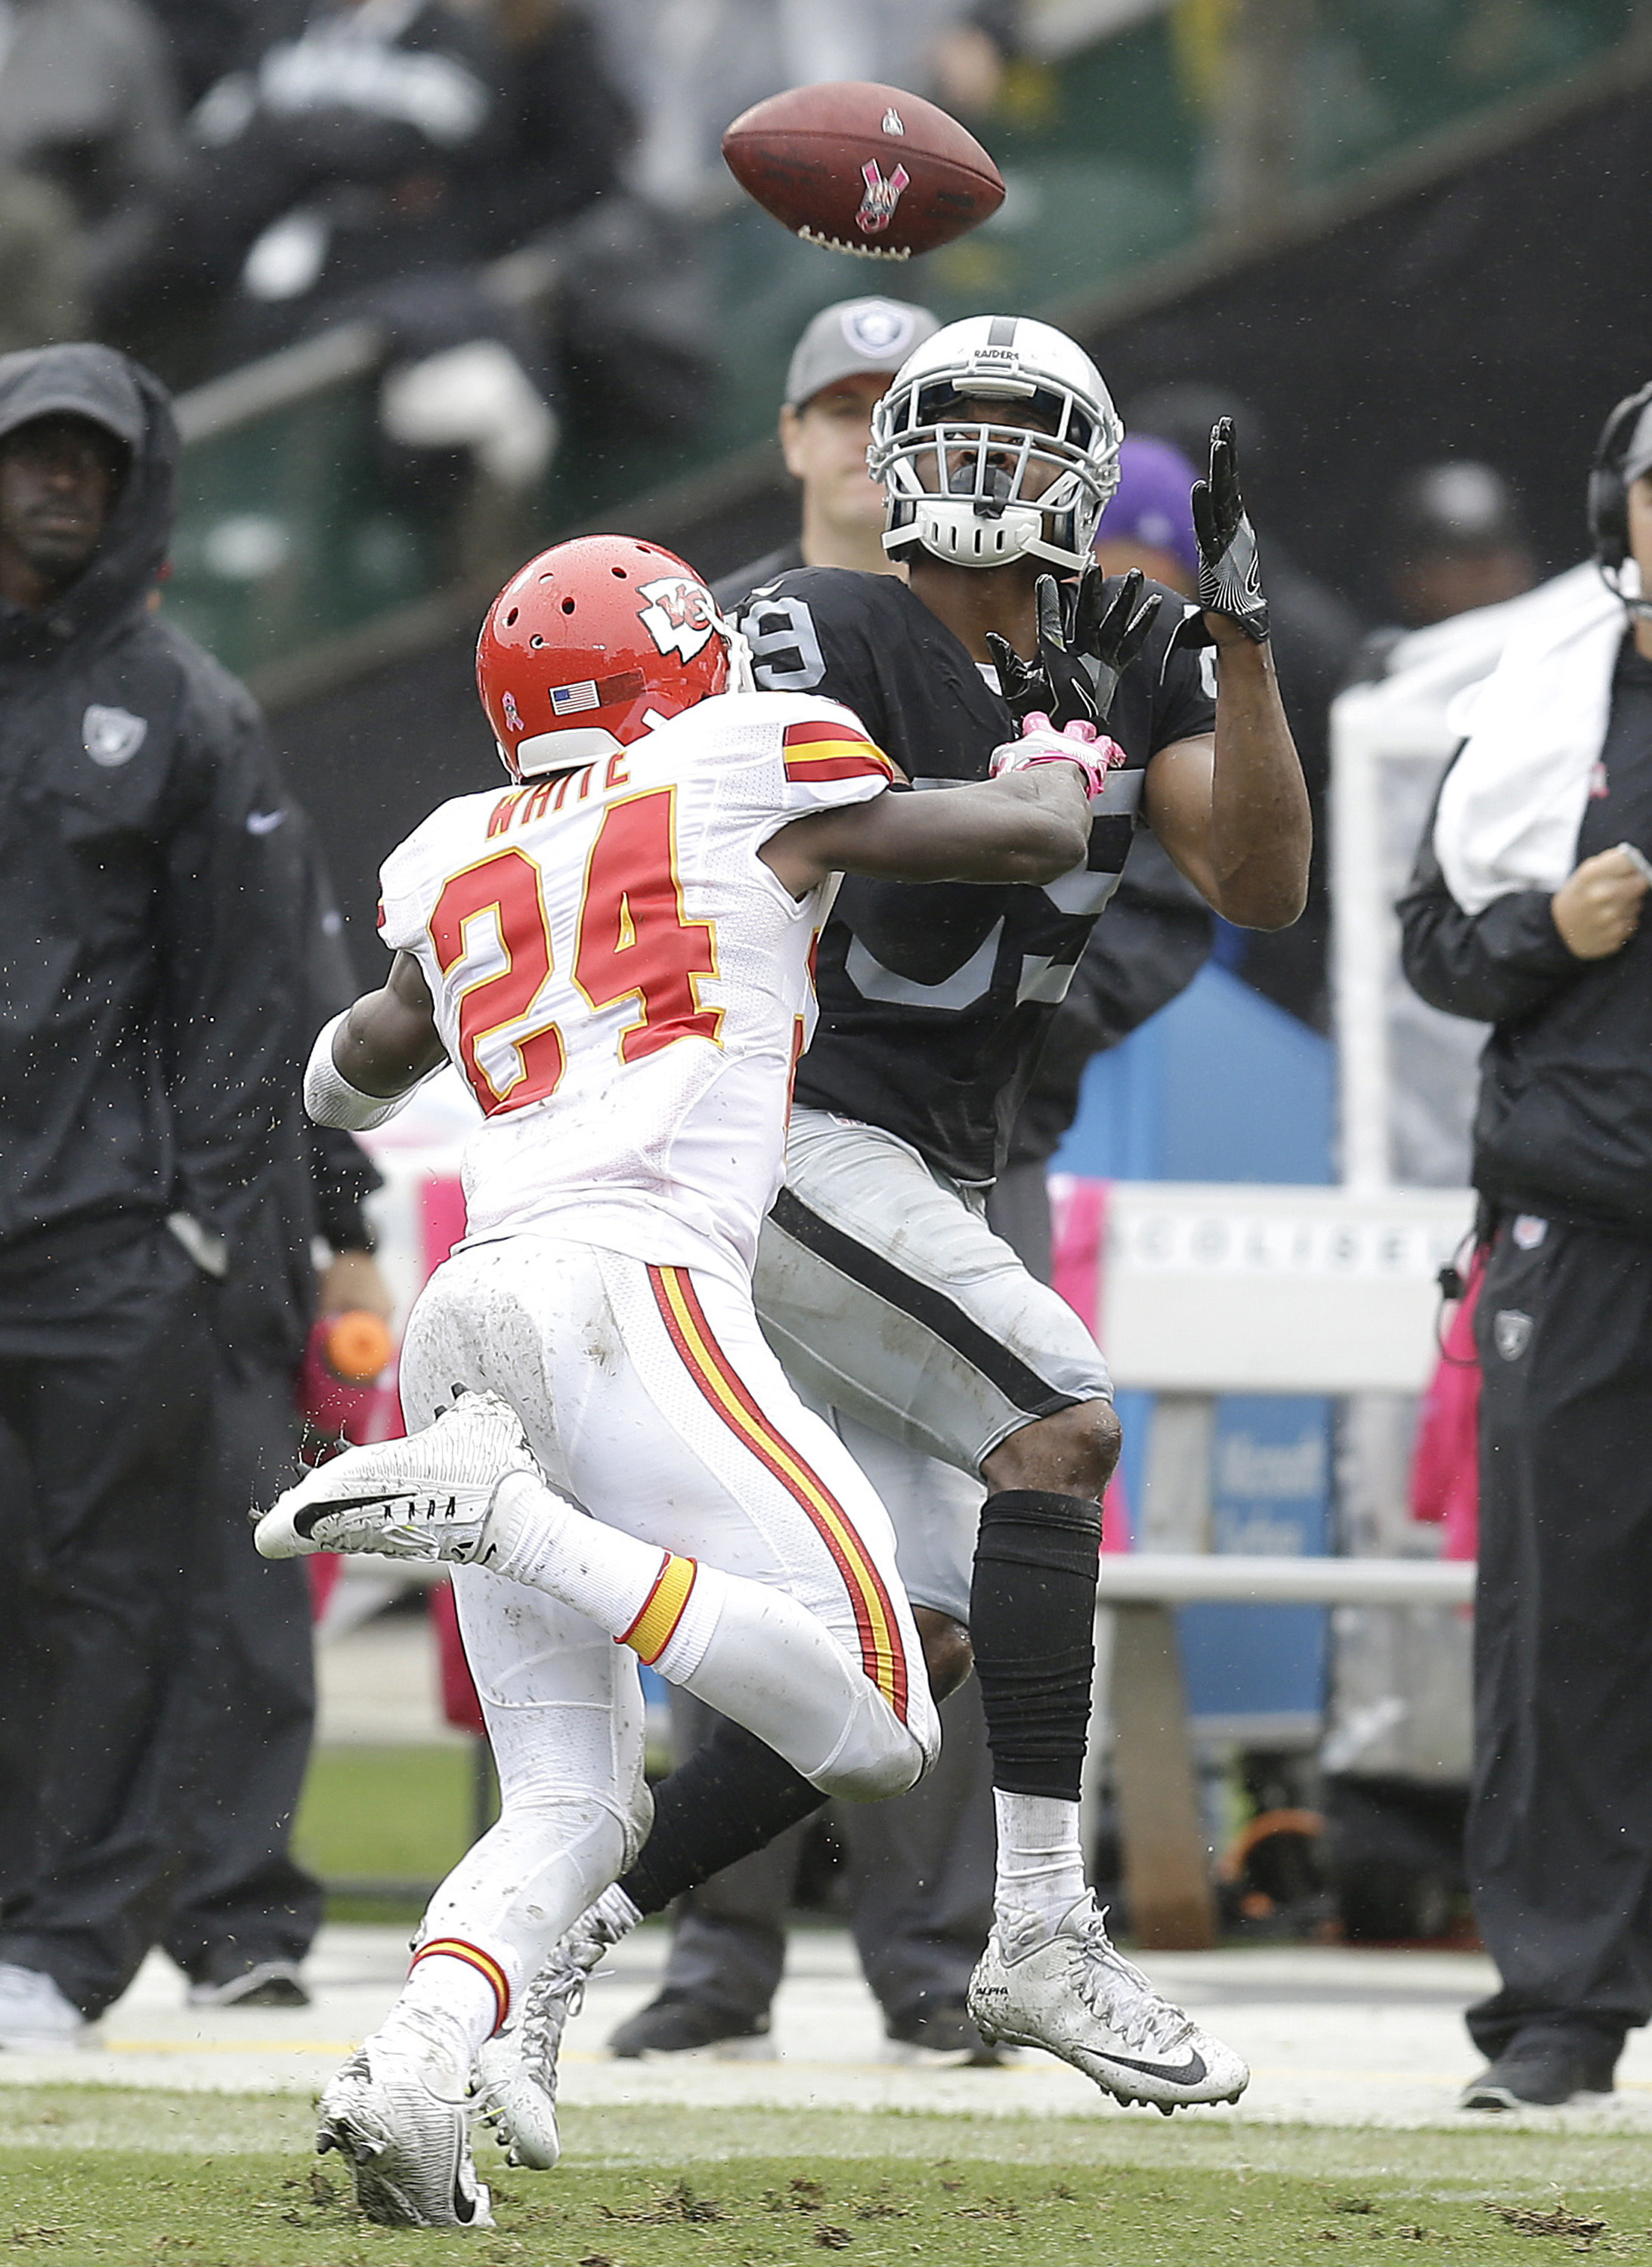 Oakland Raiders wide receiver Amari Cooper (89) catches a pass against Kansas City Chiefs cornerback D.J. White (24) during the first half of an NFL football game in Oakland, Calif., Sunday, Oct. 16, 2016. (AP Photo/Ben Margot)